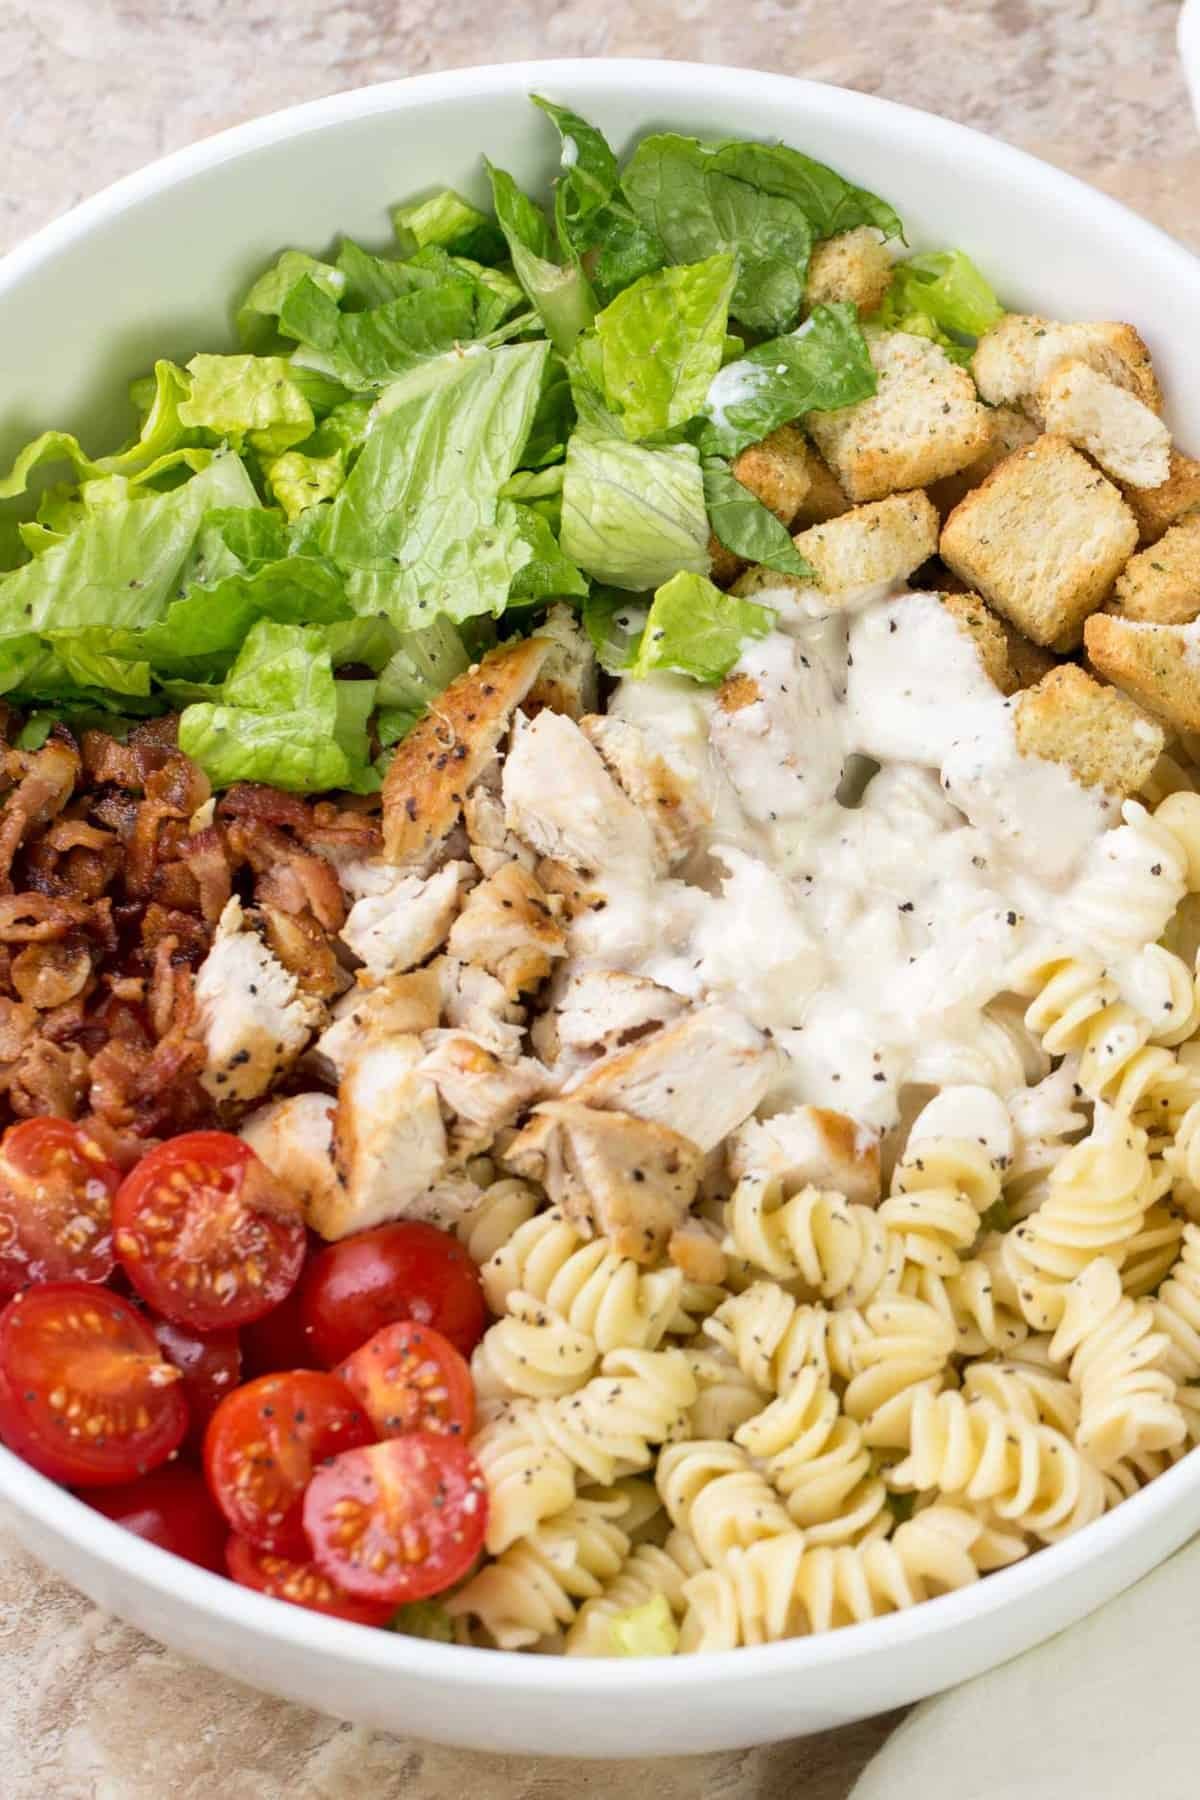 Pasta salad with romaine, bacon, chicken and croutons with a Caesar salad dressing.